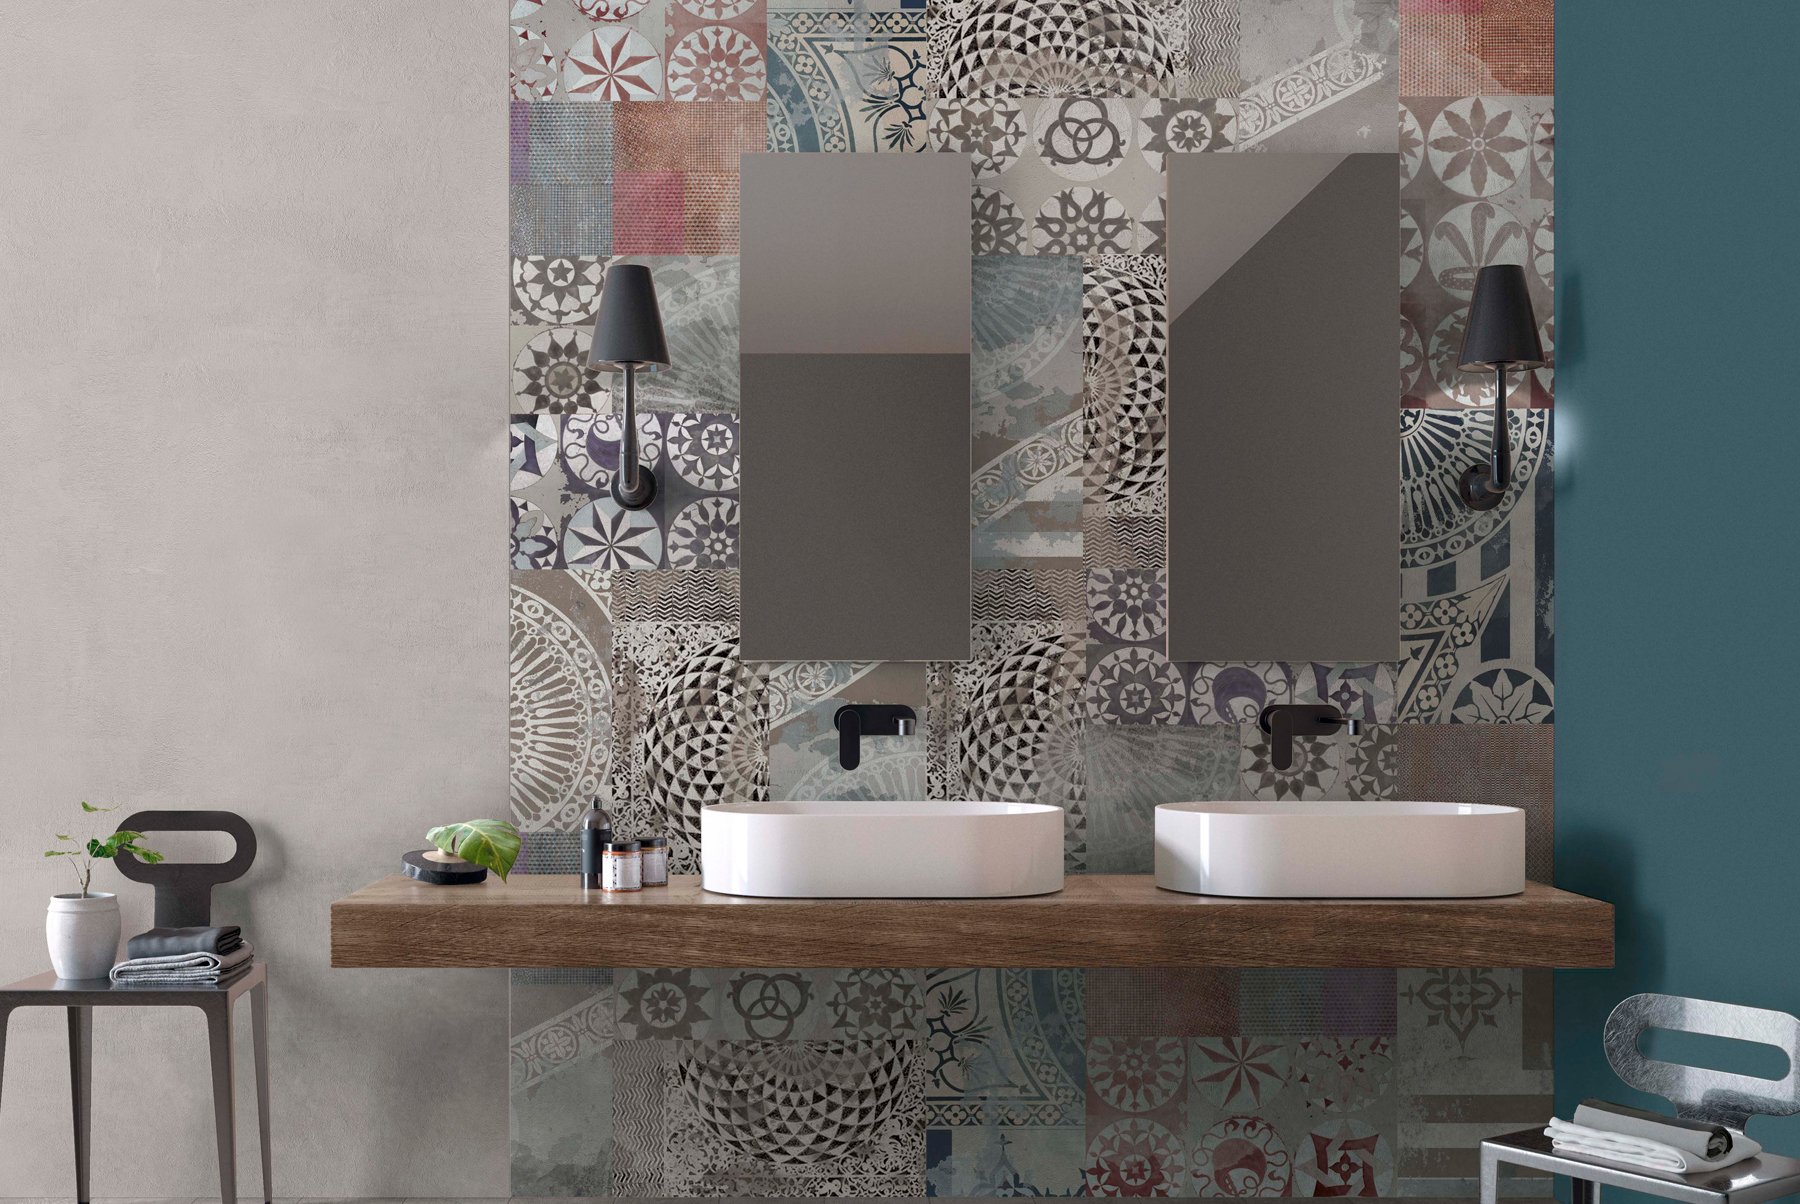 TILES-WIDE-N-STYLE-INSET-2-1800x1204